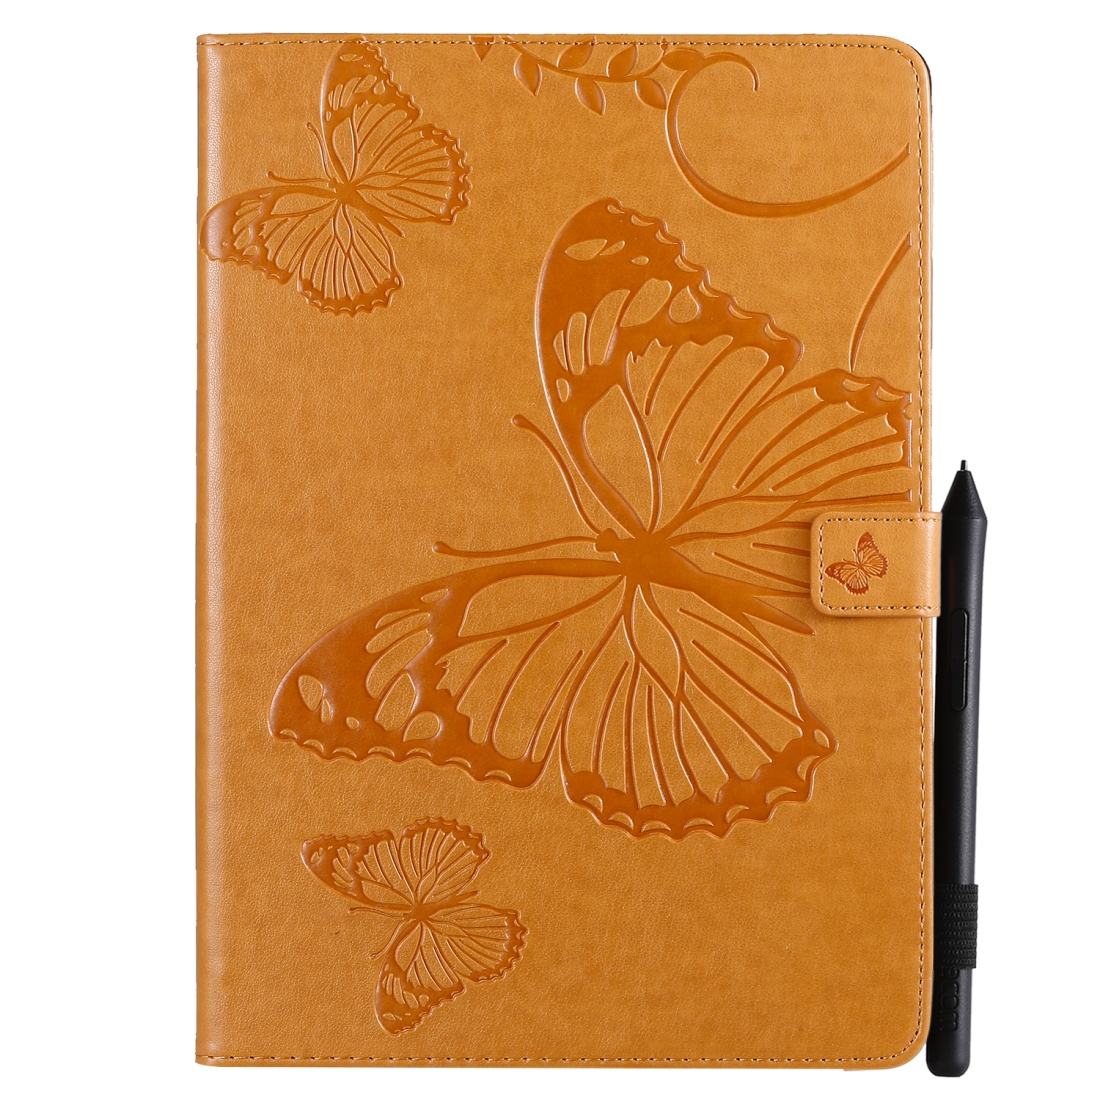 iPad 7th Generation Case (10.2 Inch) Also Fits /Pro 10.5/Air 2019 Leather Butterfly Design (Yellow)